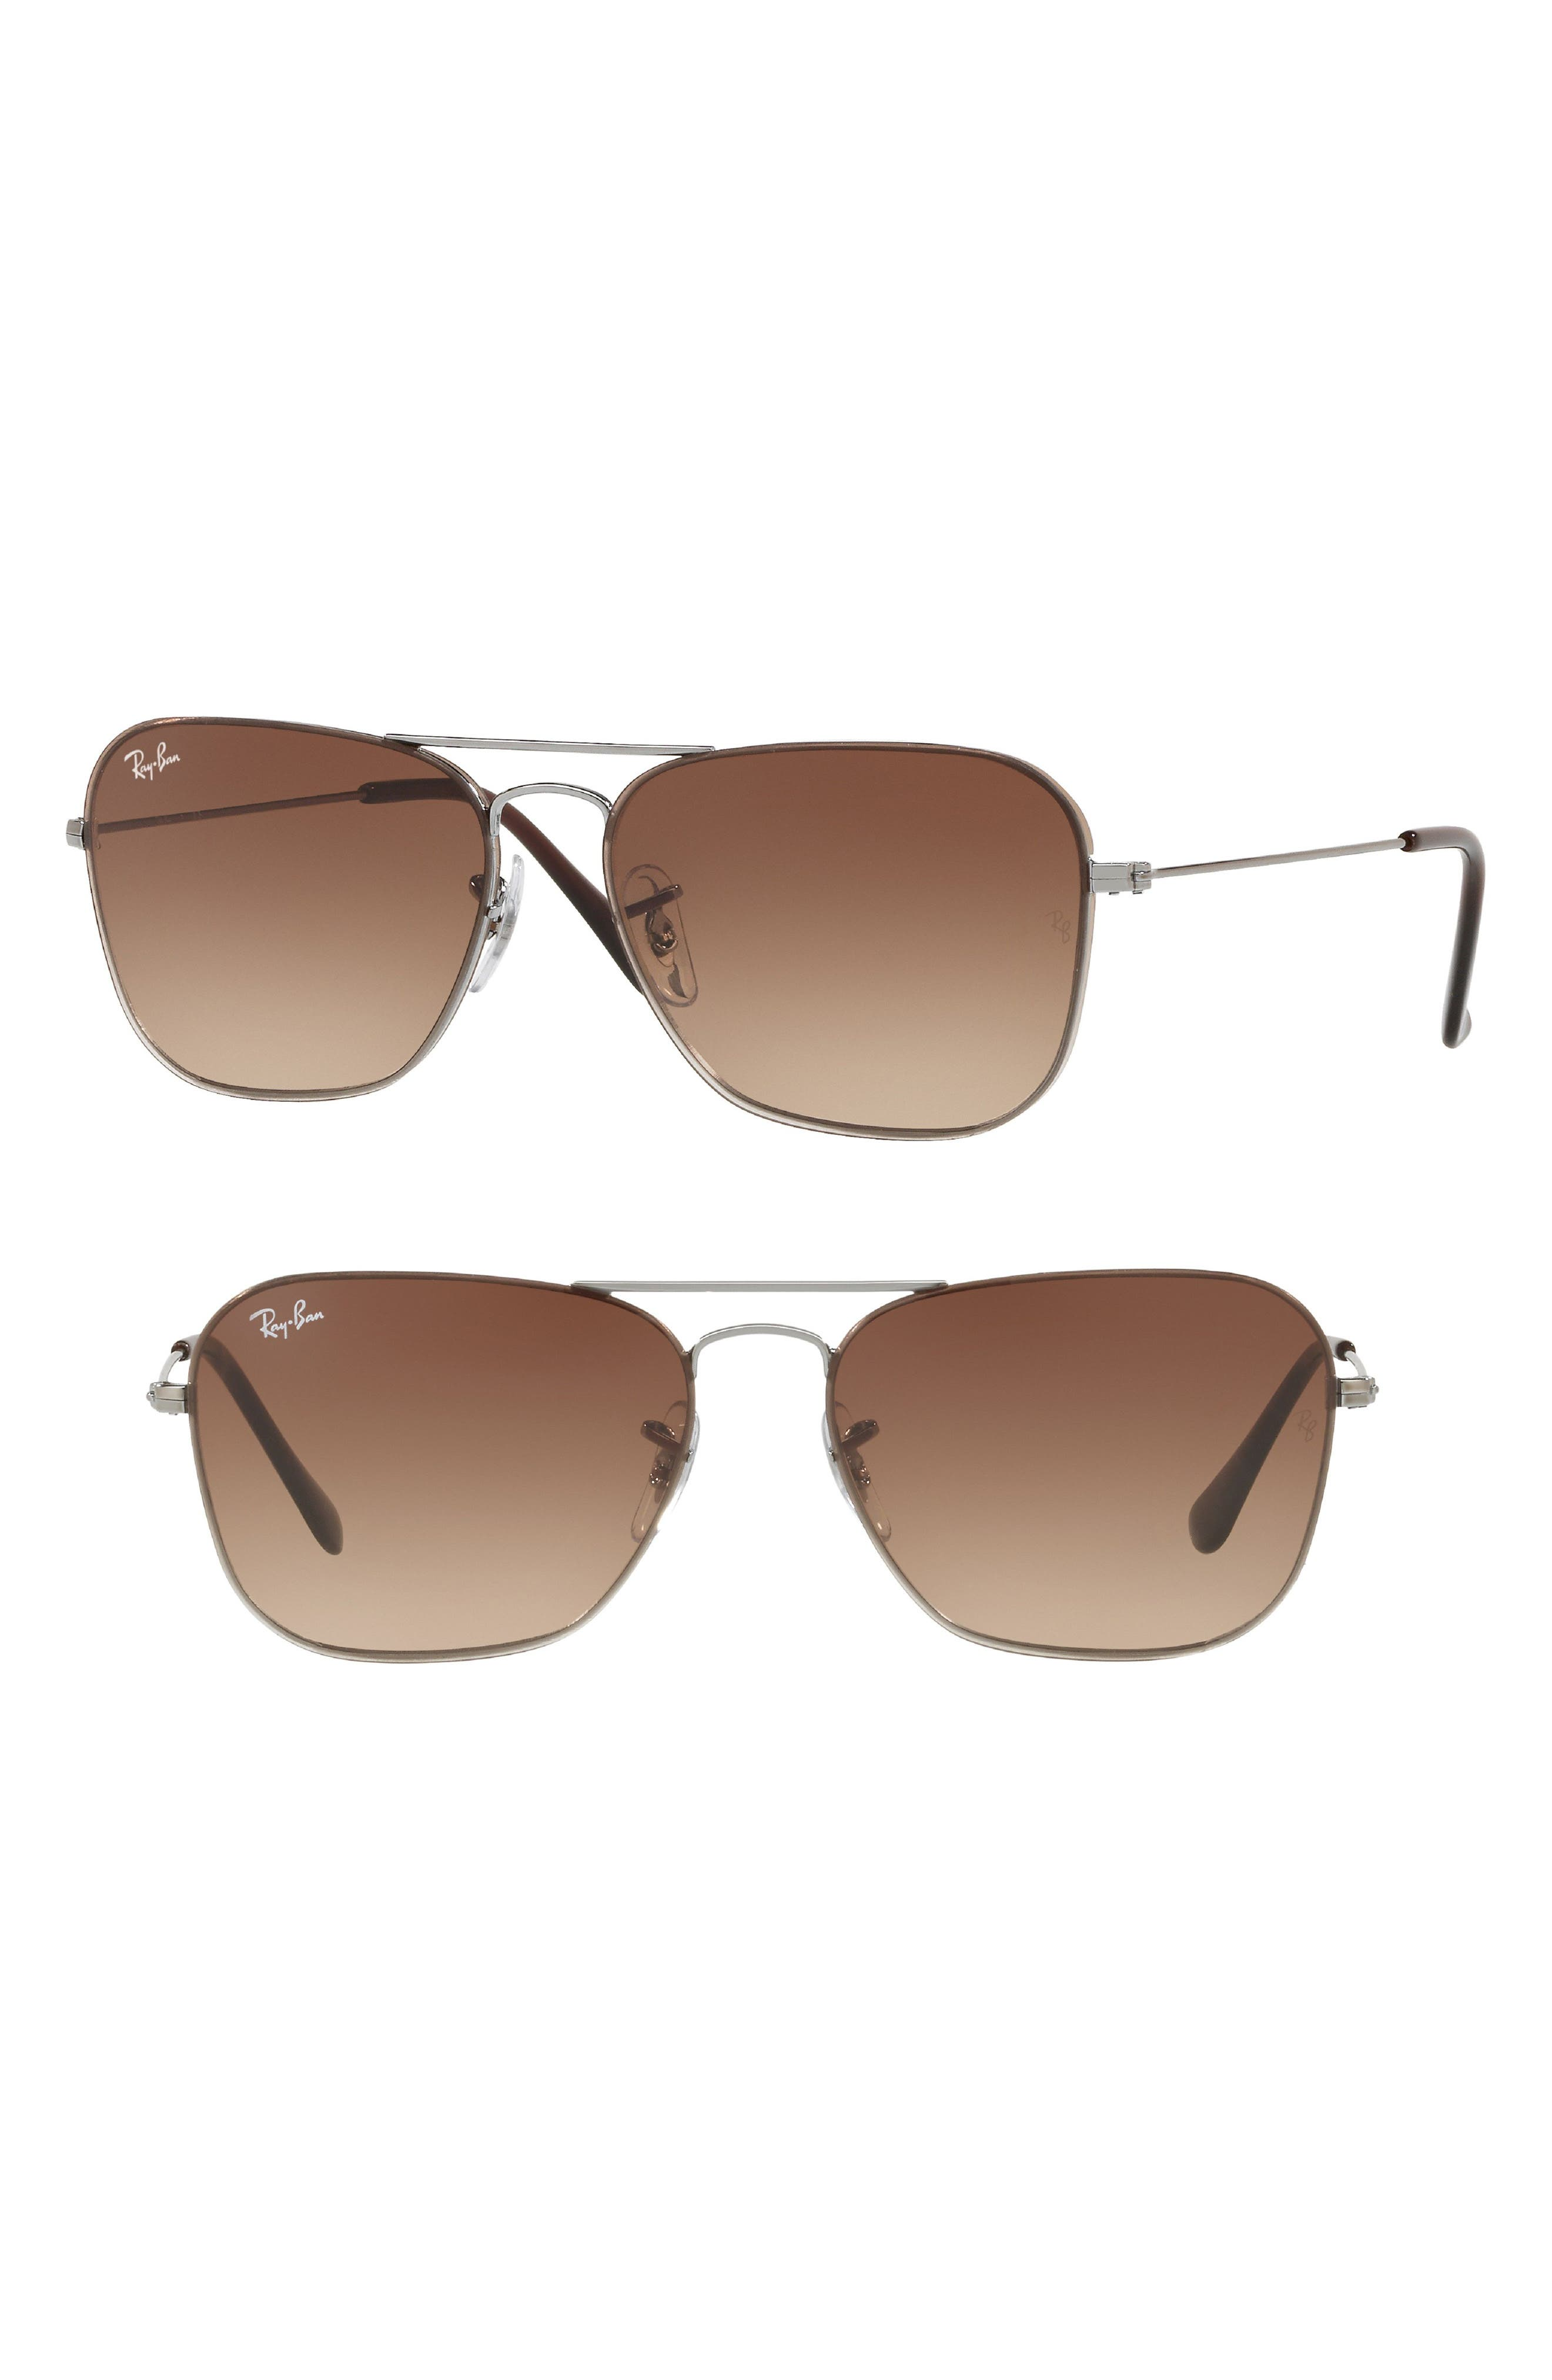 Youngster 56mm Aviator Sunglasses,                             Main thumbnail 1, color,                             062